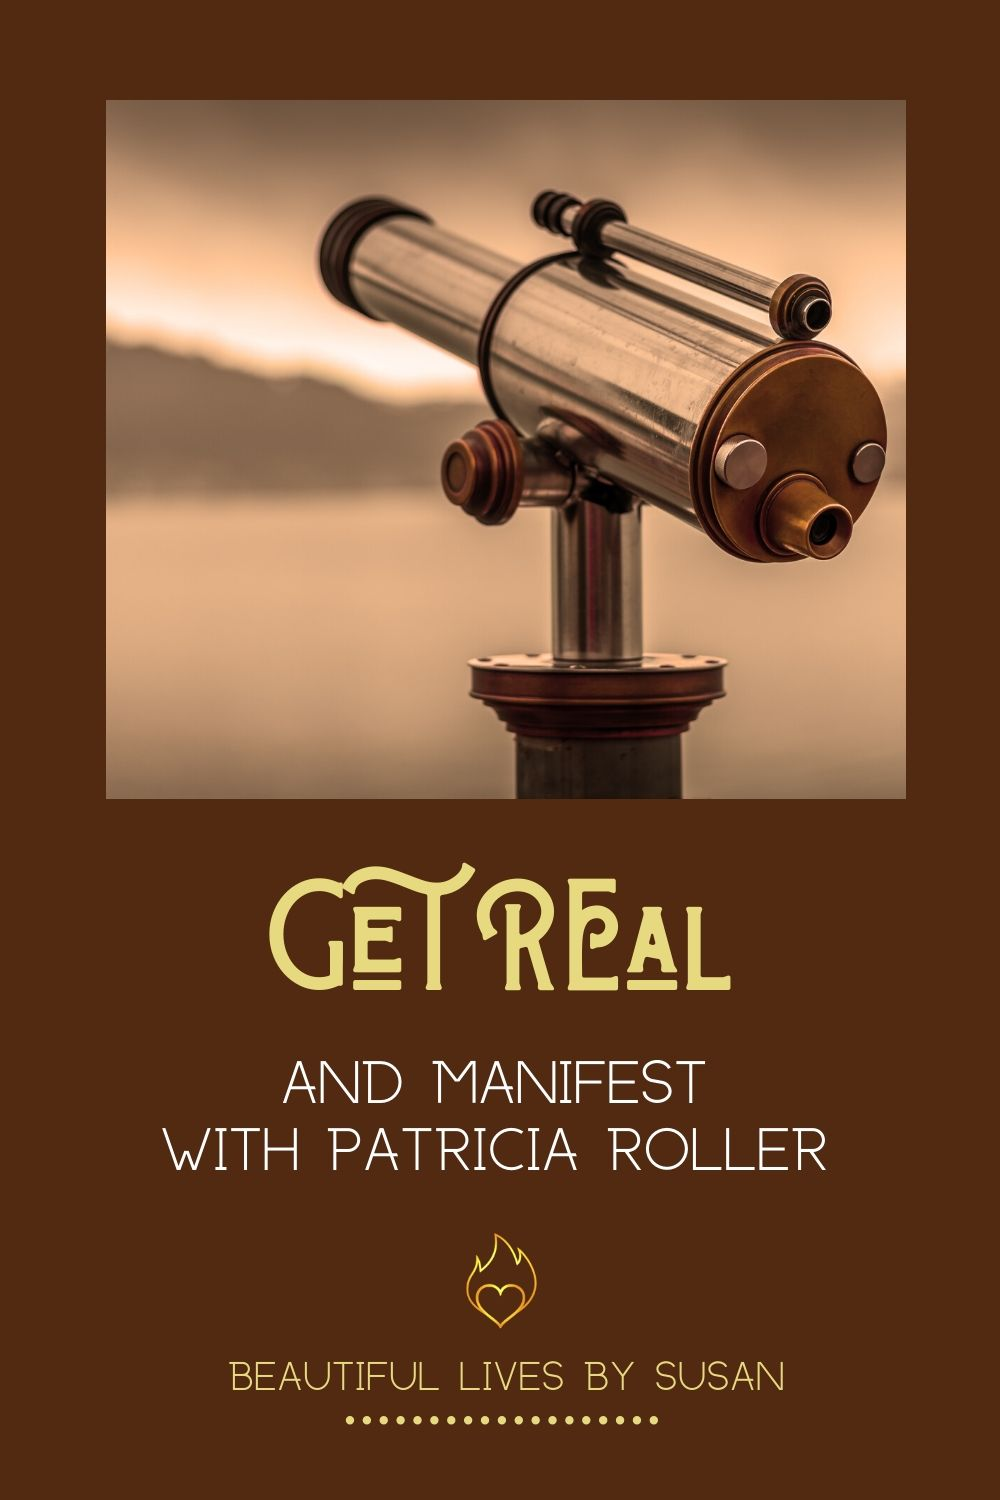 Get Real and Manifest with Patricia Roller